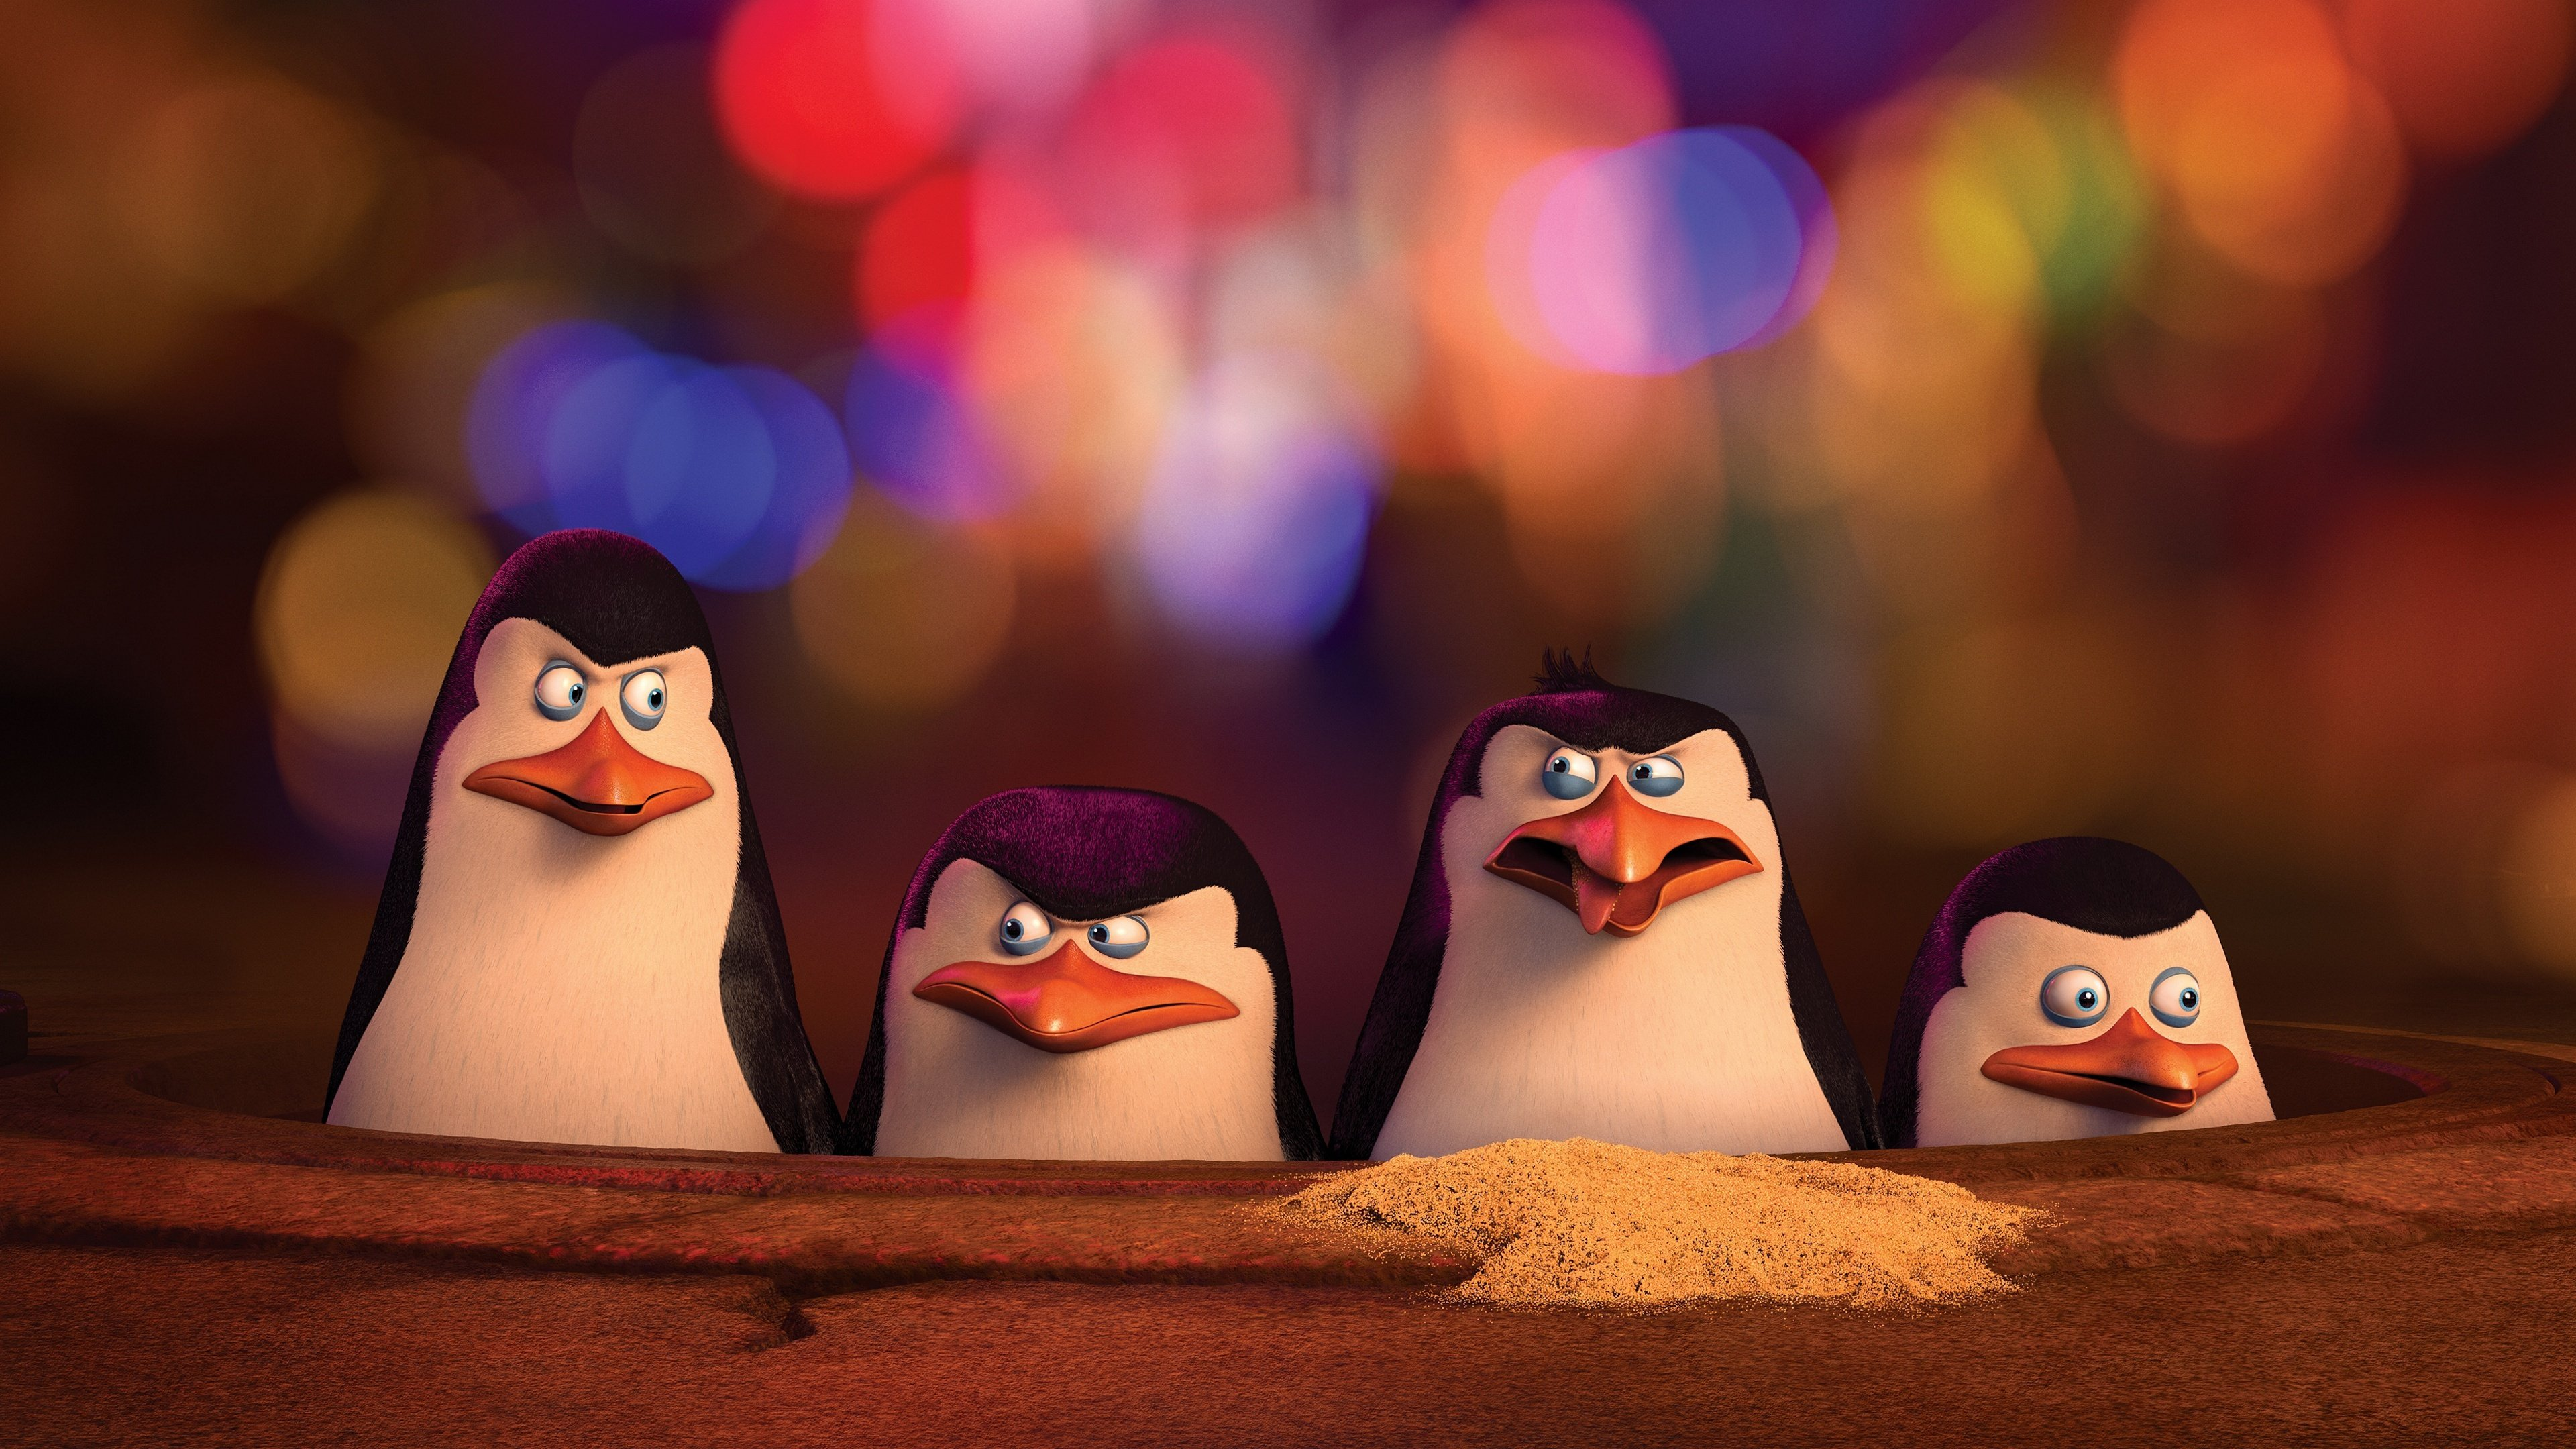 65 penguins of madagascar hd wallpapers backgrounds - Madagascar wallpaper ...